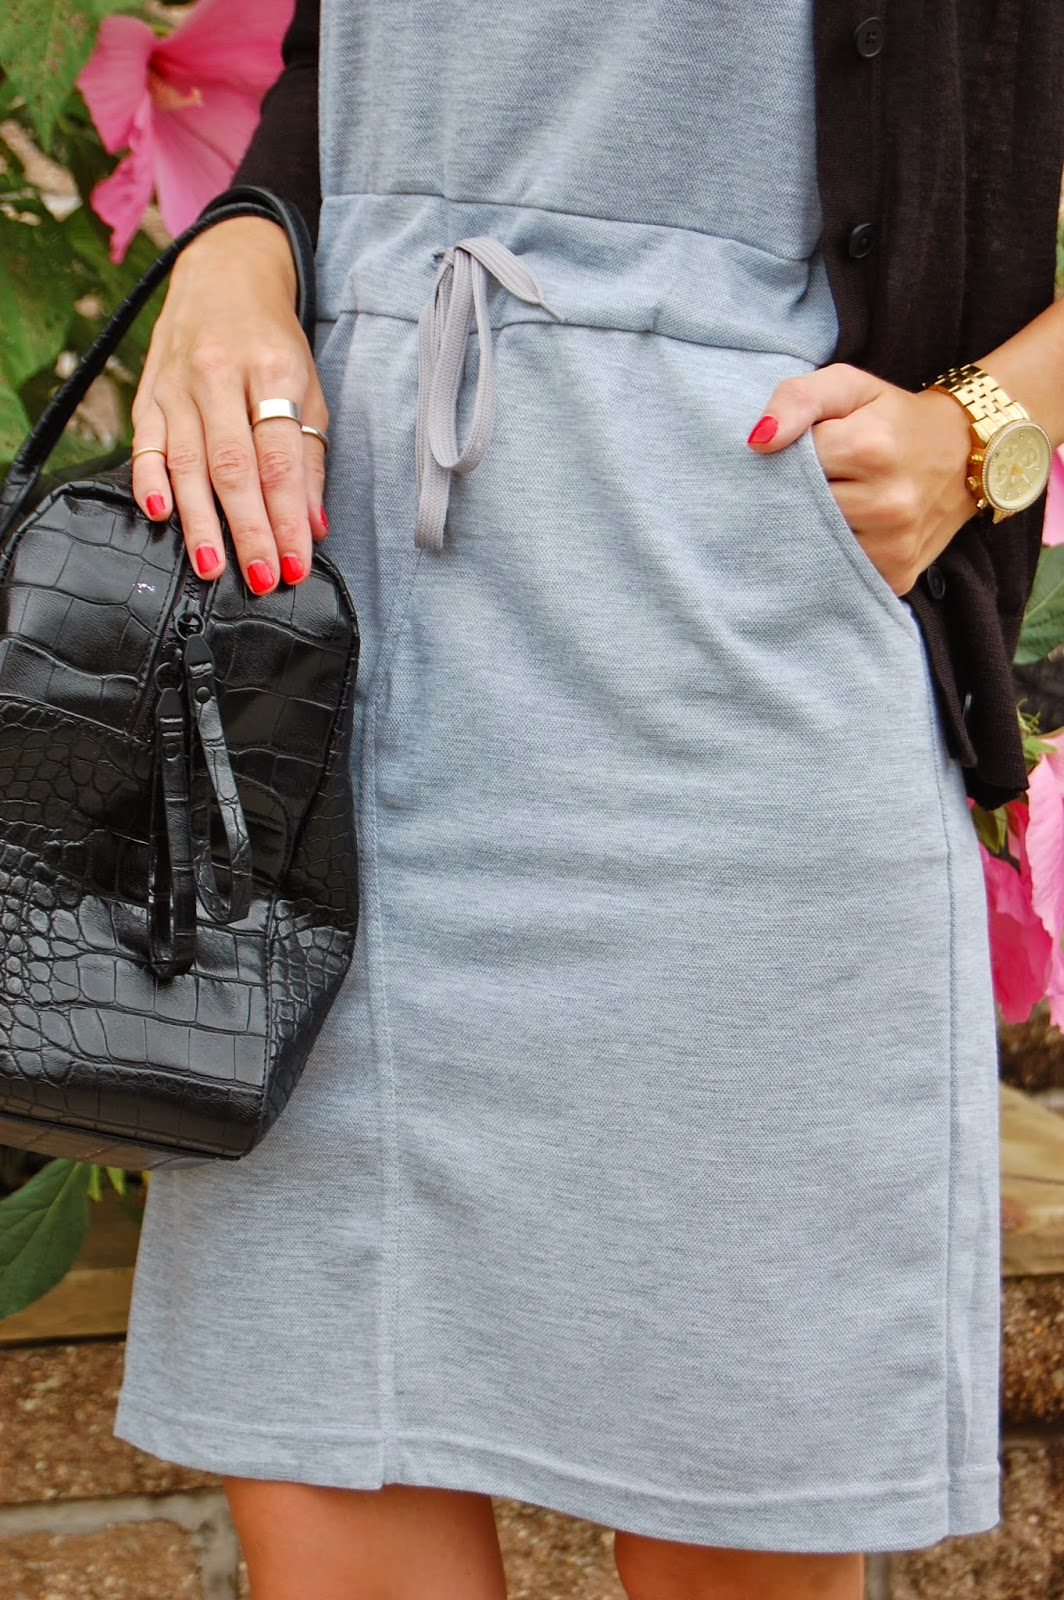 Wearing Sheinside Grey Sleeveless Drawstring Slim Pockets Dress, Casual weekend outfit, converse sneakers